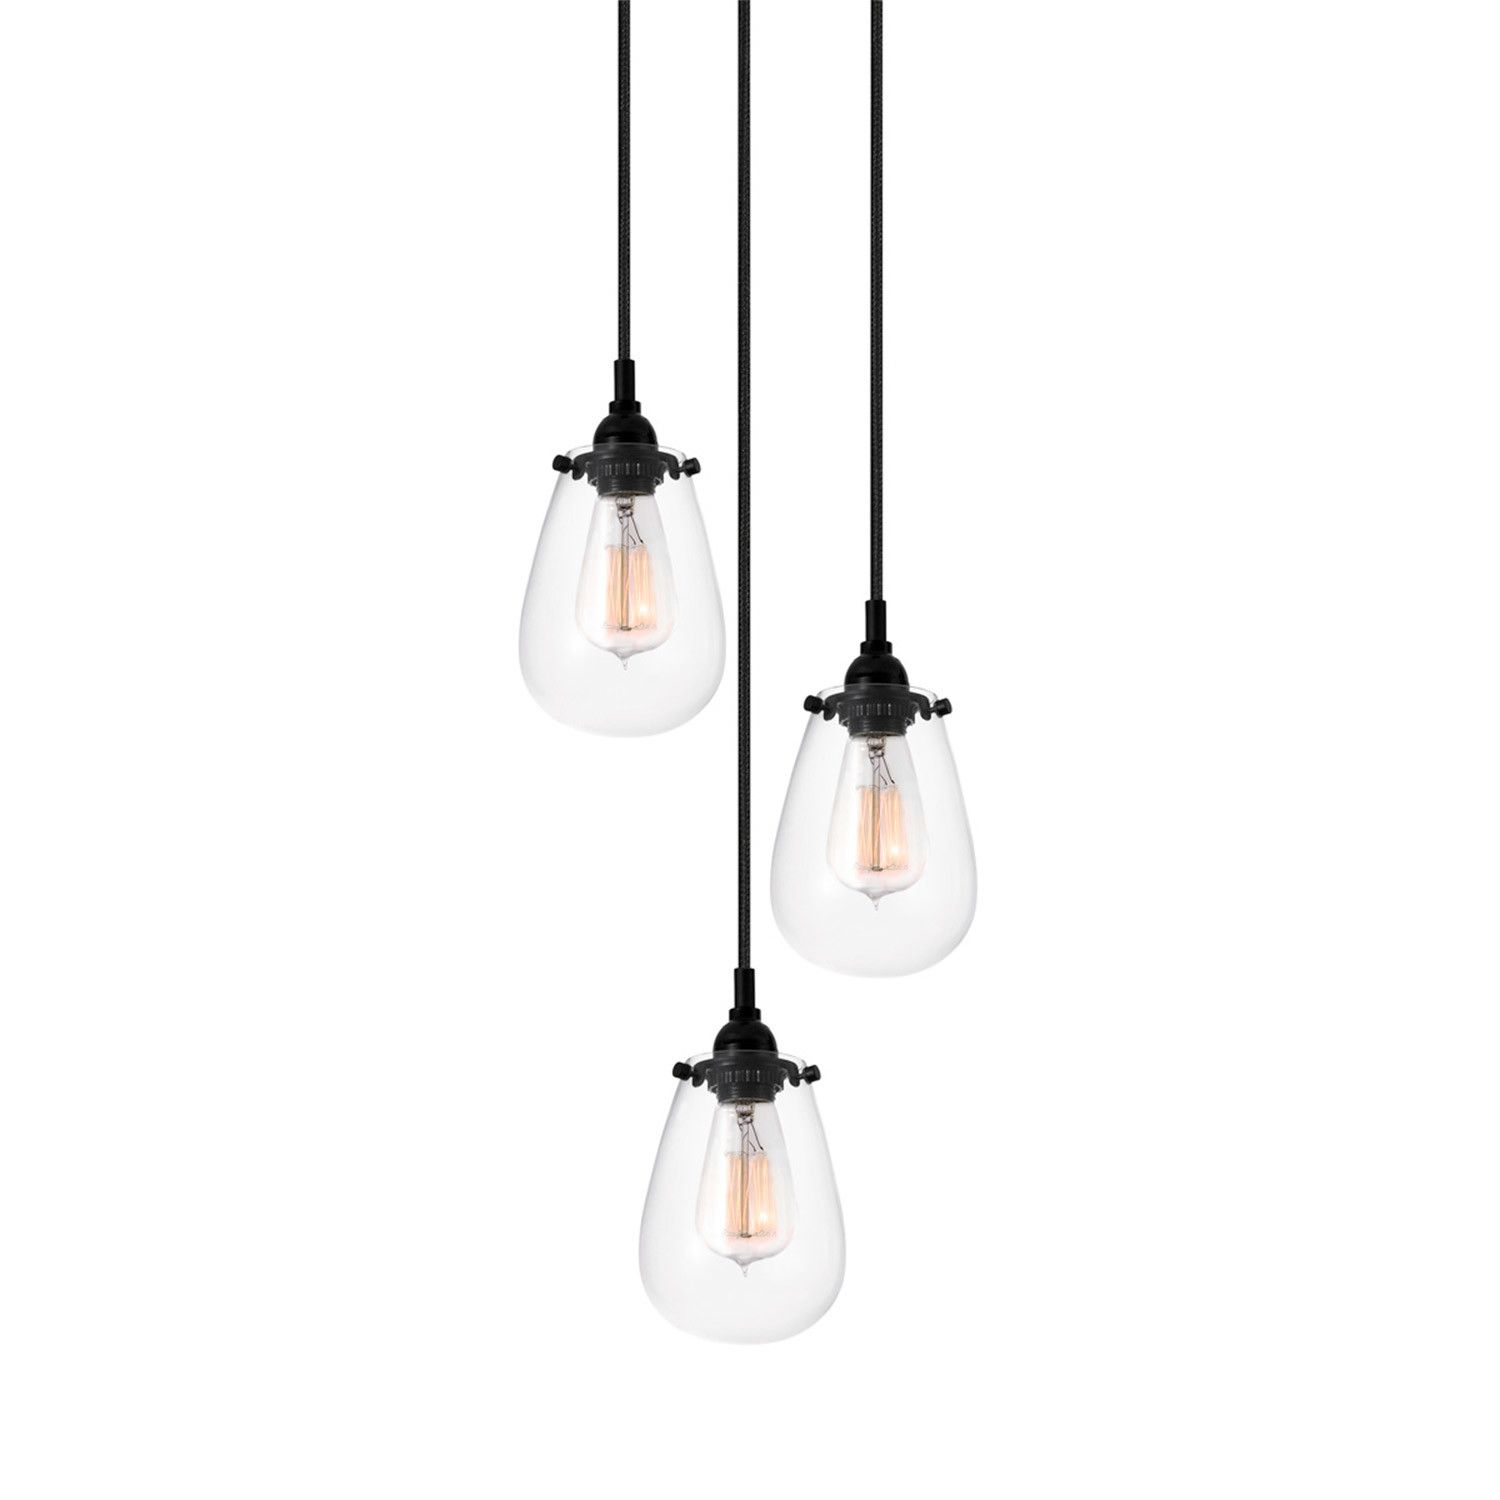 Chelsea 3 Light Cluster Pendant 이미지 포함